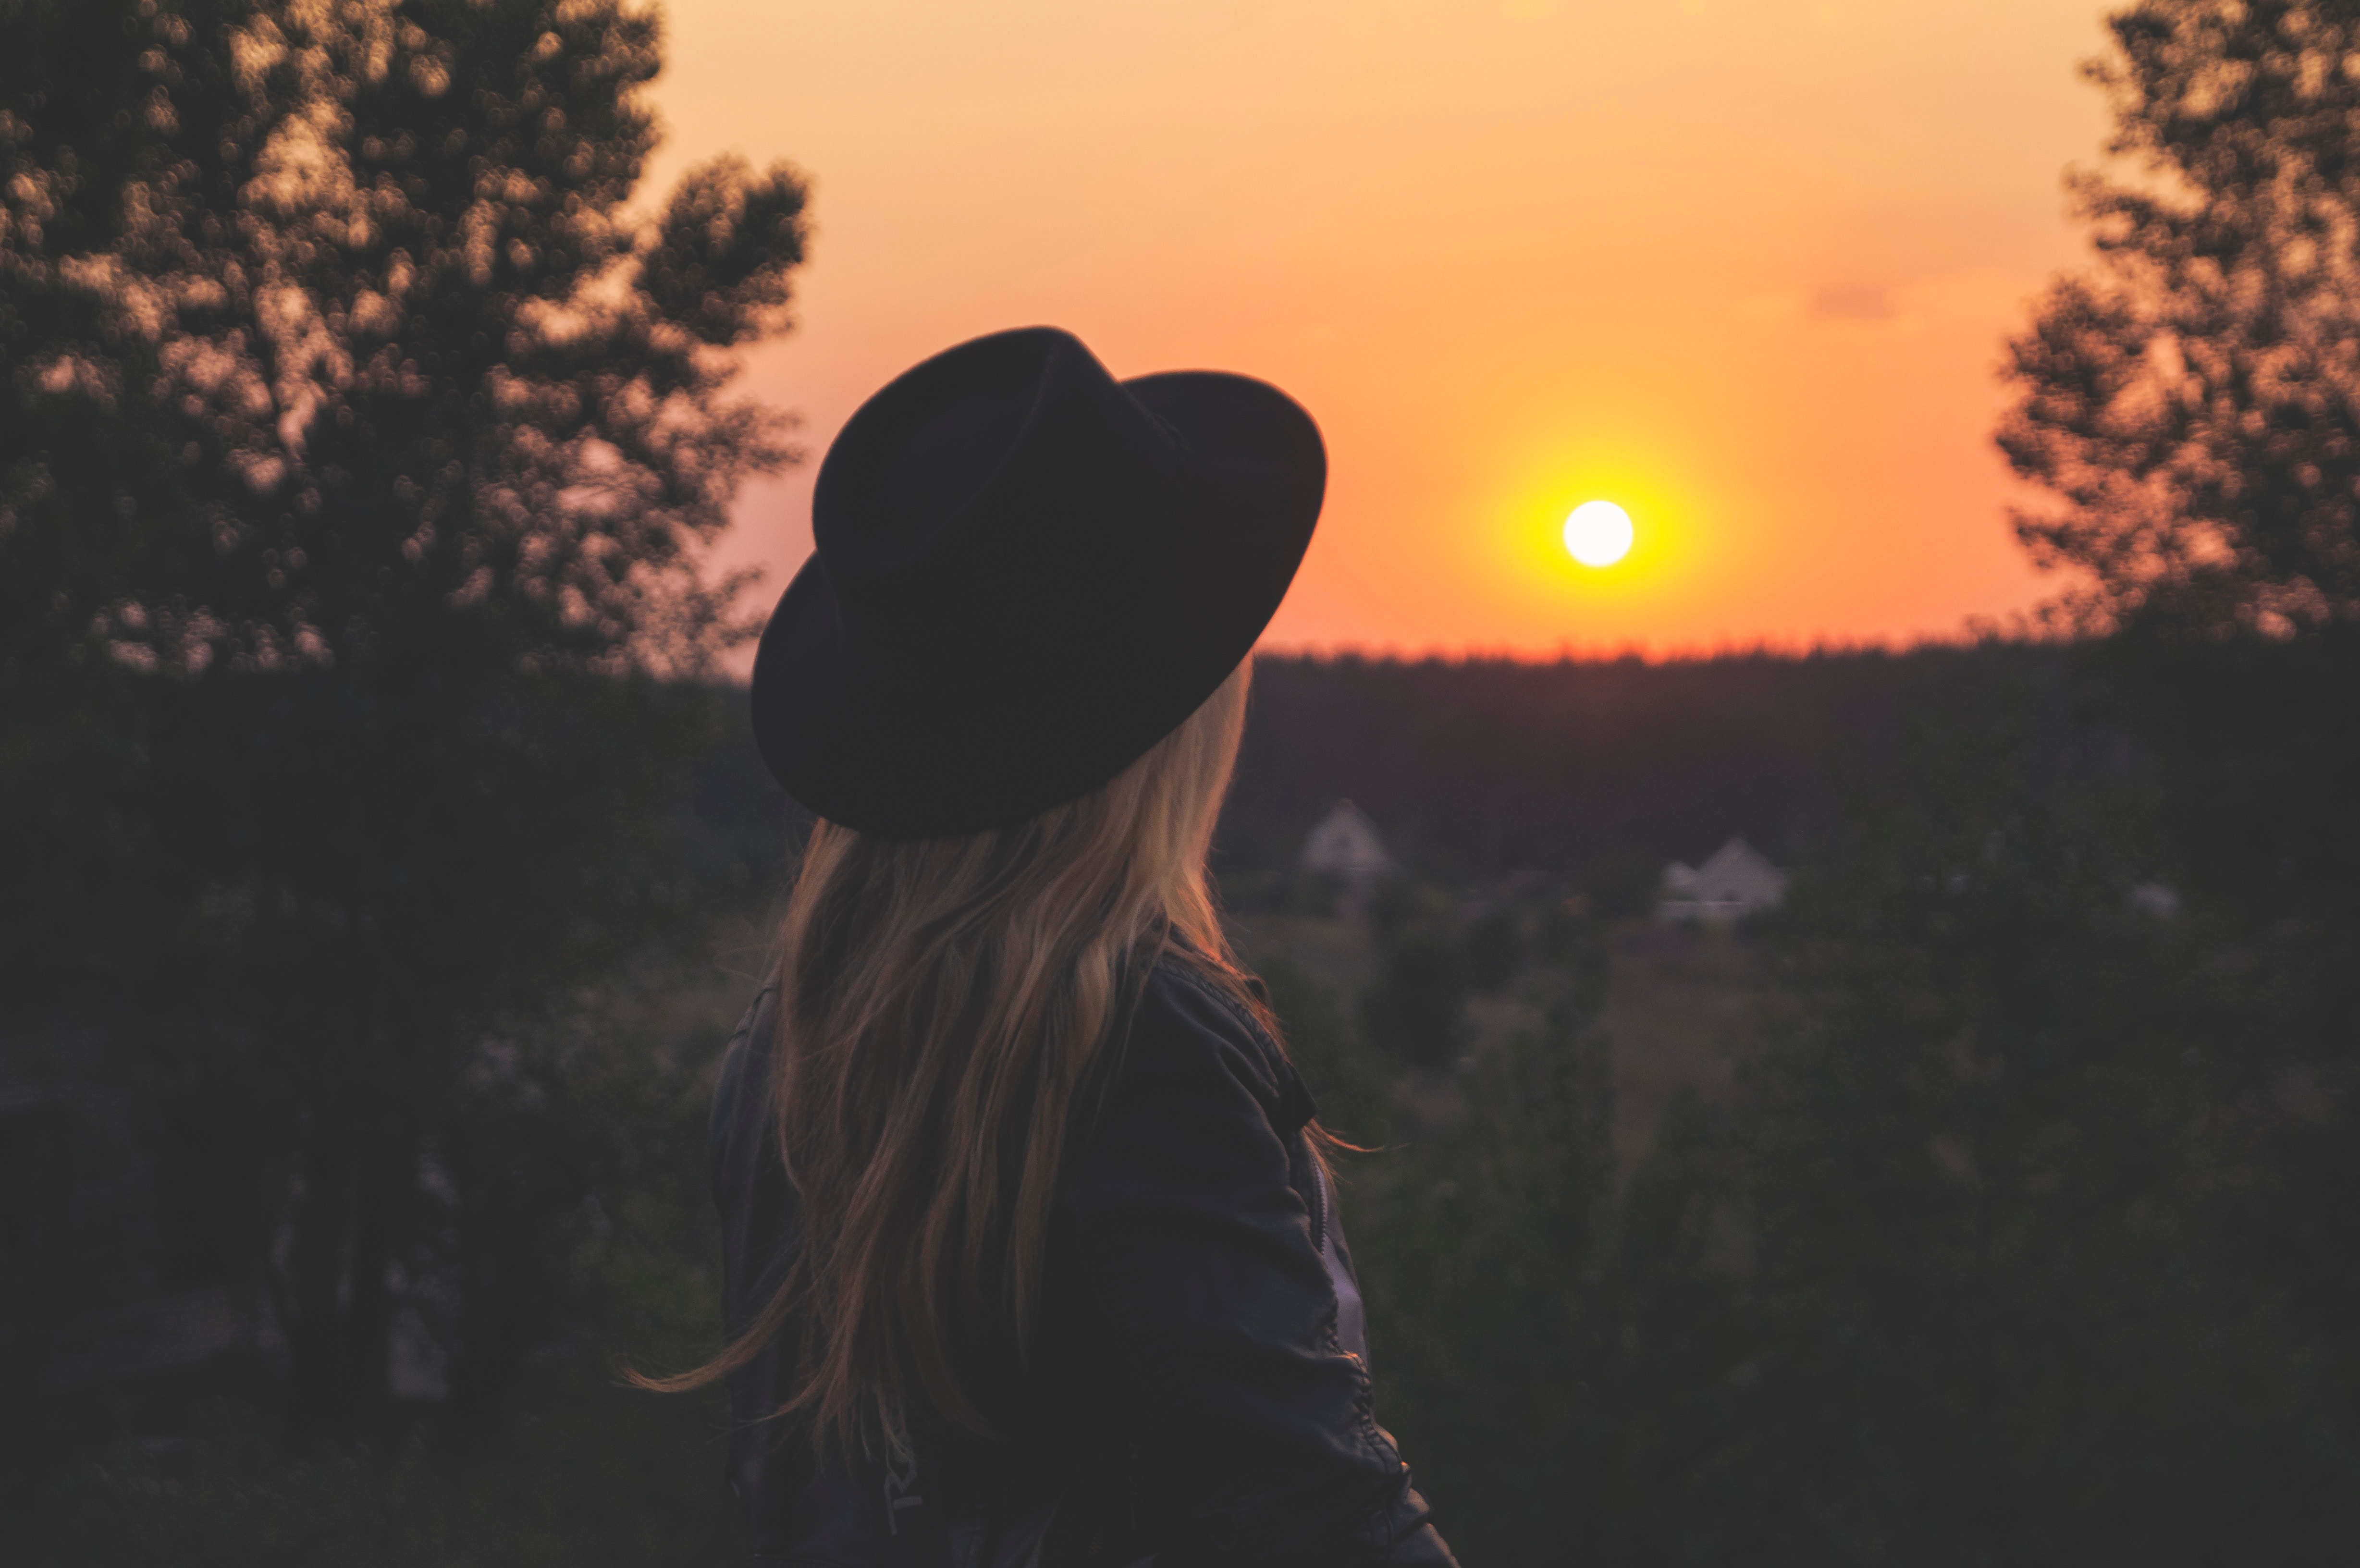 young blonde woman wearing black hat facing setting sun on horizon